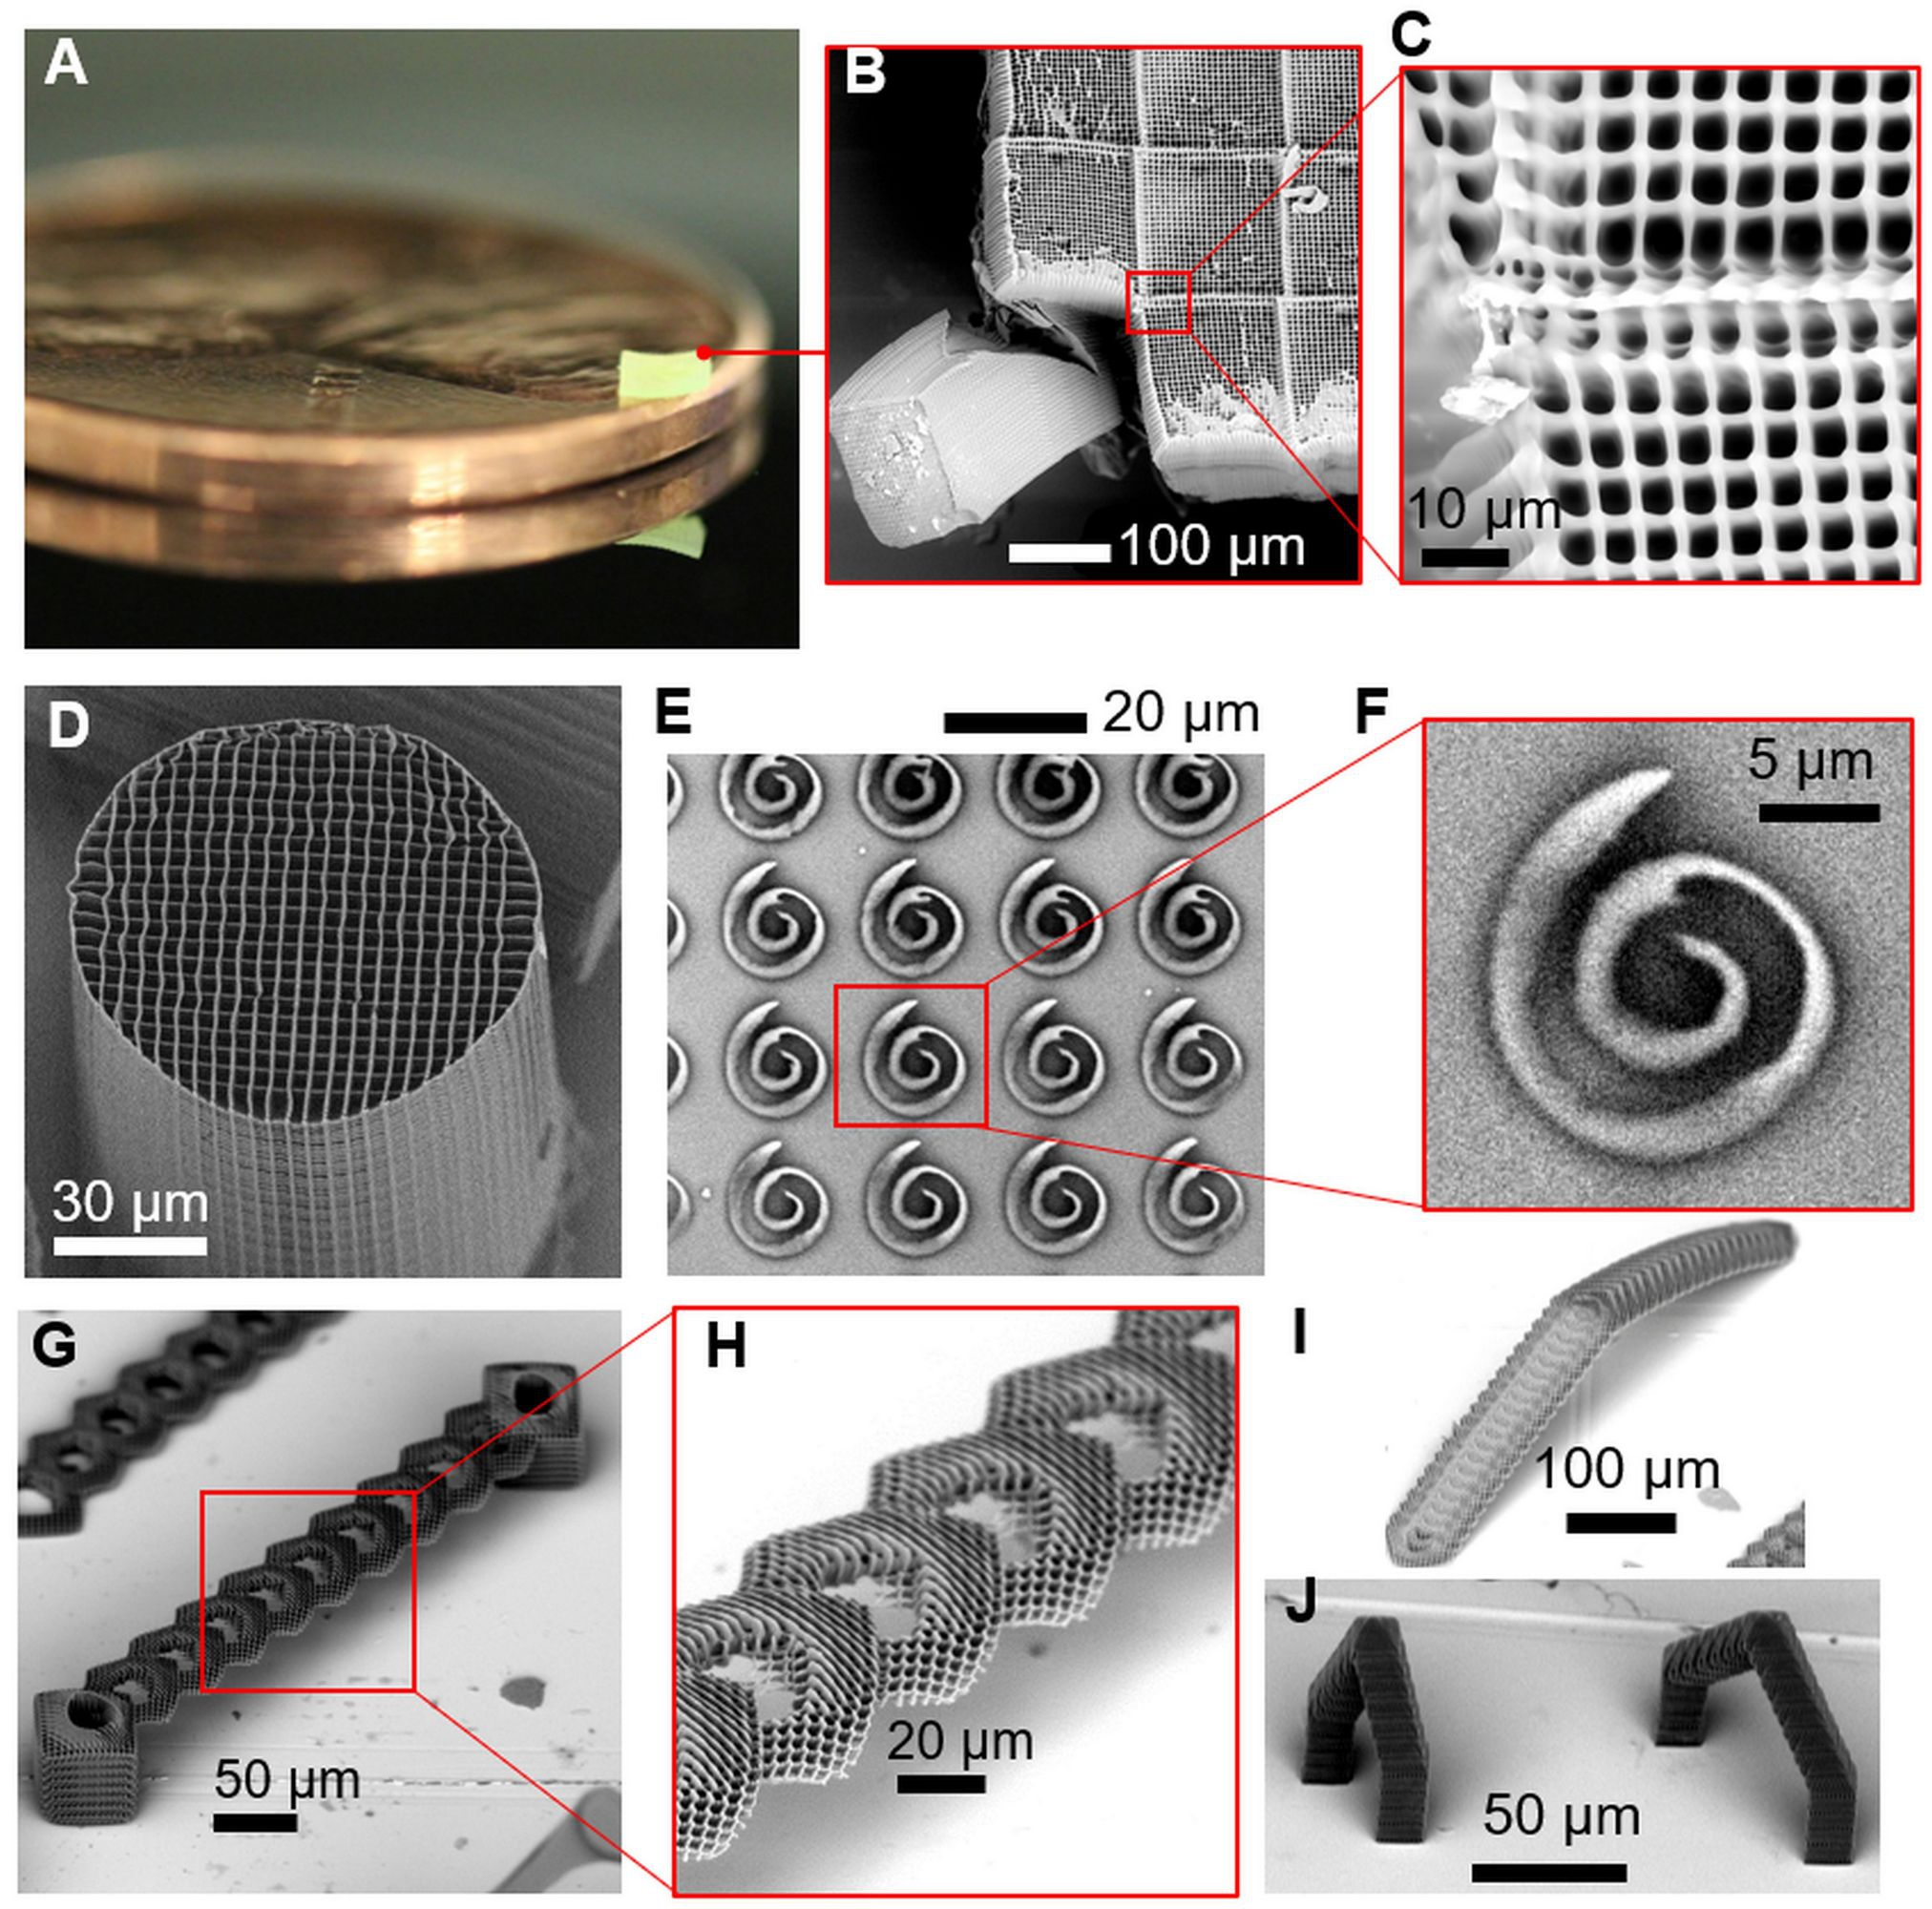 Fig. 1. Printing of complex 3D structures with submicron resolution via FP-TPL. (A to C) Millimeter-scale structure with submicrometer features supported on a U.S. penny on top of a reflective surface. The 2.20 mm × 2.20 mm × 0.25 mm cuboid was printed in 8 min 20s, demonstrating a 3D printing rate of 8.7 mm3/hour. In contrast, point-scanning techniques would require several hours to print this cuboid. (D) A 3D micropillar printed through stacking of 2D layers, demonstrating uniformity of printing that is indistinguishable from that of commercial serial-scanning systems. (E and F) Spiral structures printed through projection of a single layer demonstrating the ability to rapidly print curvilinear structures within single-digit millisecond time scales without any stage motion. (G to J) Overhanging 3D structures printed by stitching multiple 2D projections demonstrating the ability to print depth-resolved features. The bridge structure in (G), with 90° overhang angles, is challenging to print using point-scanning TPL techniques or any other technique owing to its large overhang relative to the size of the smallest feature and the submicron feature resolution.